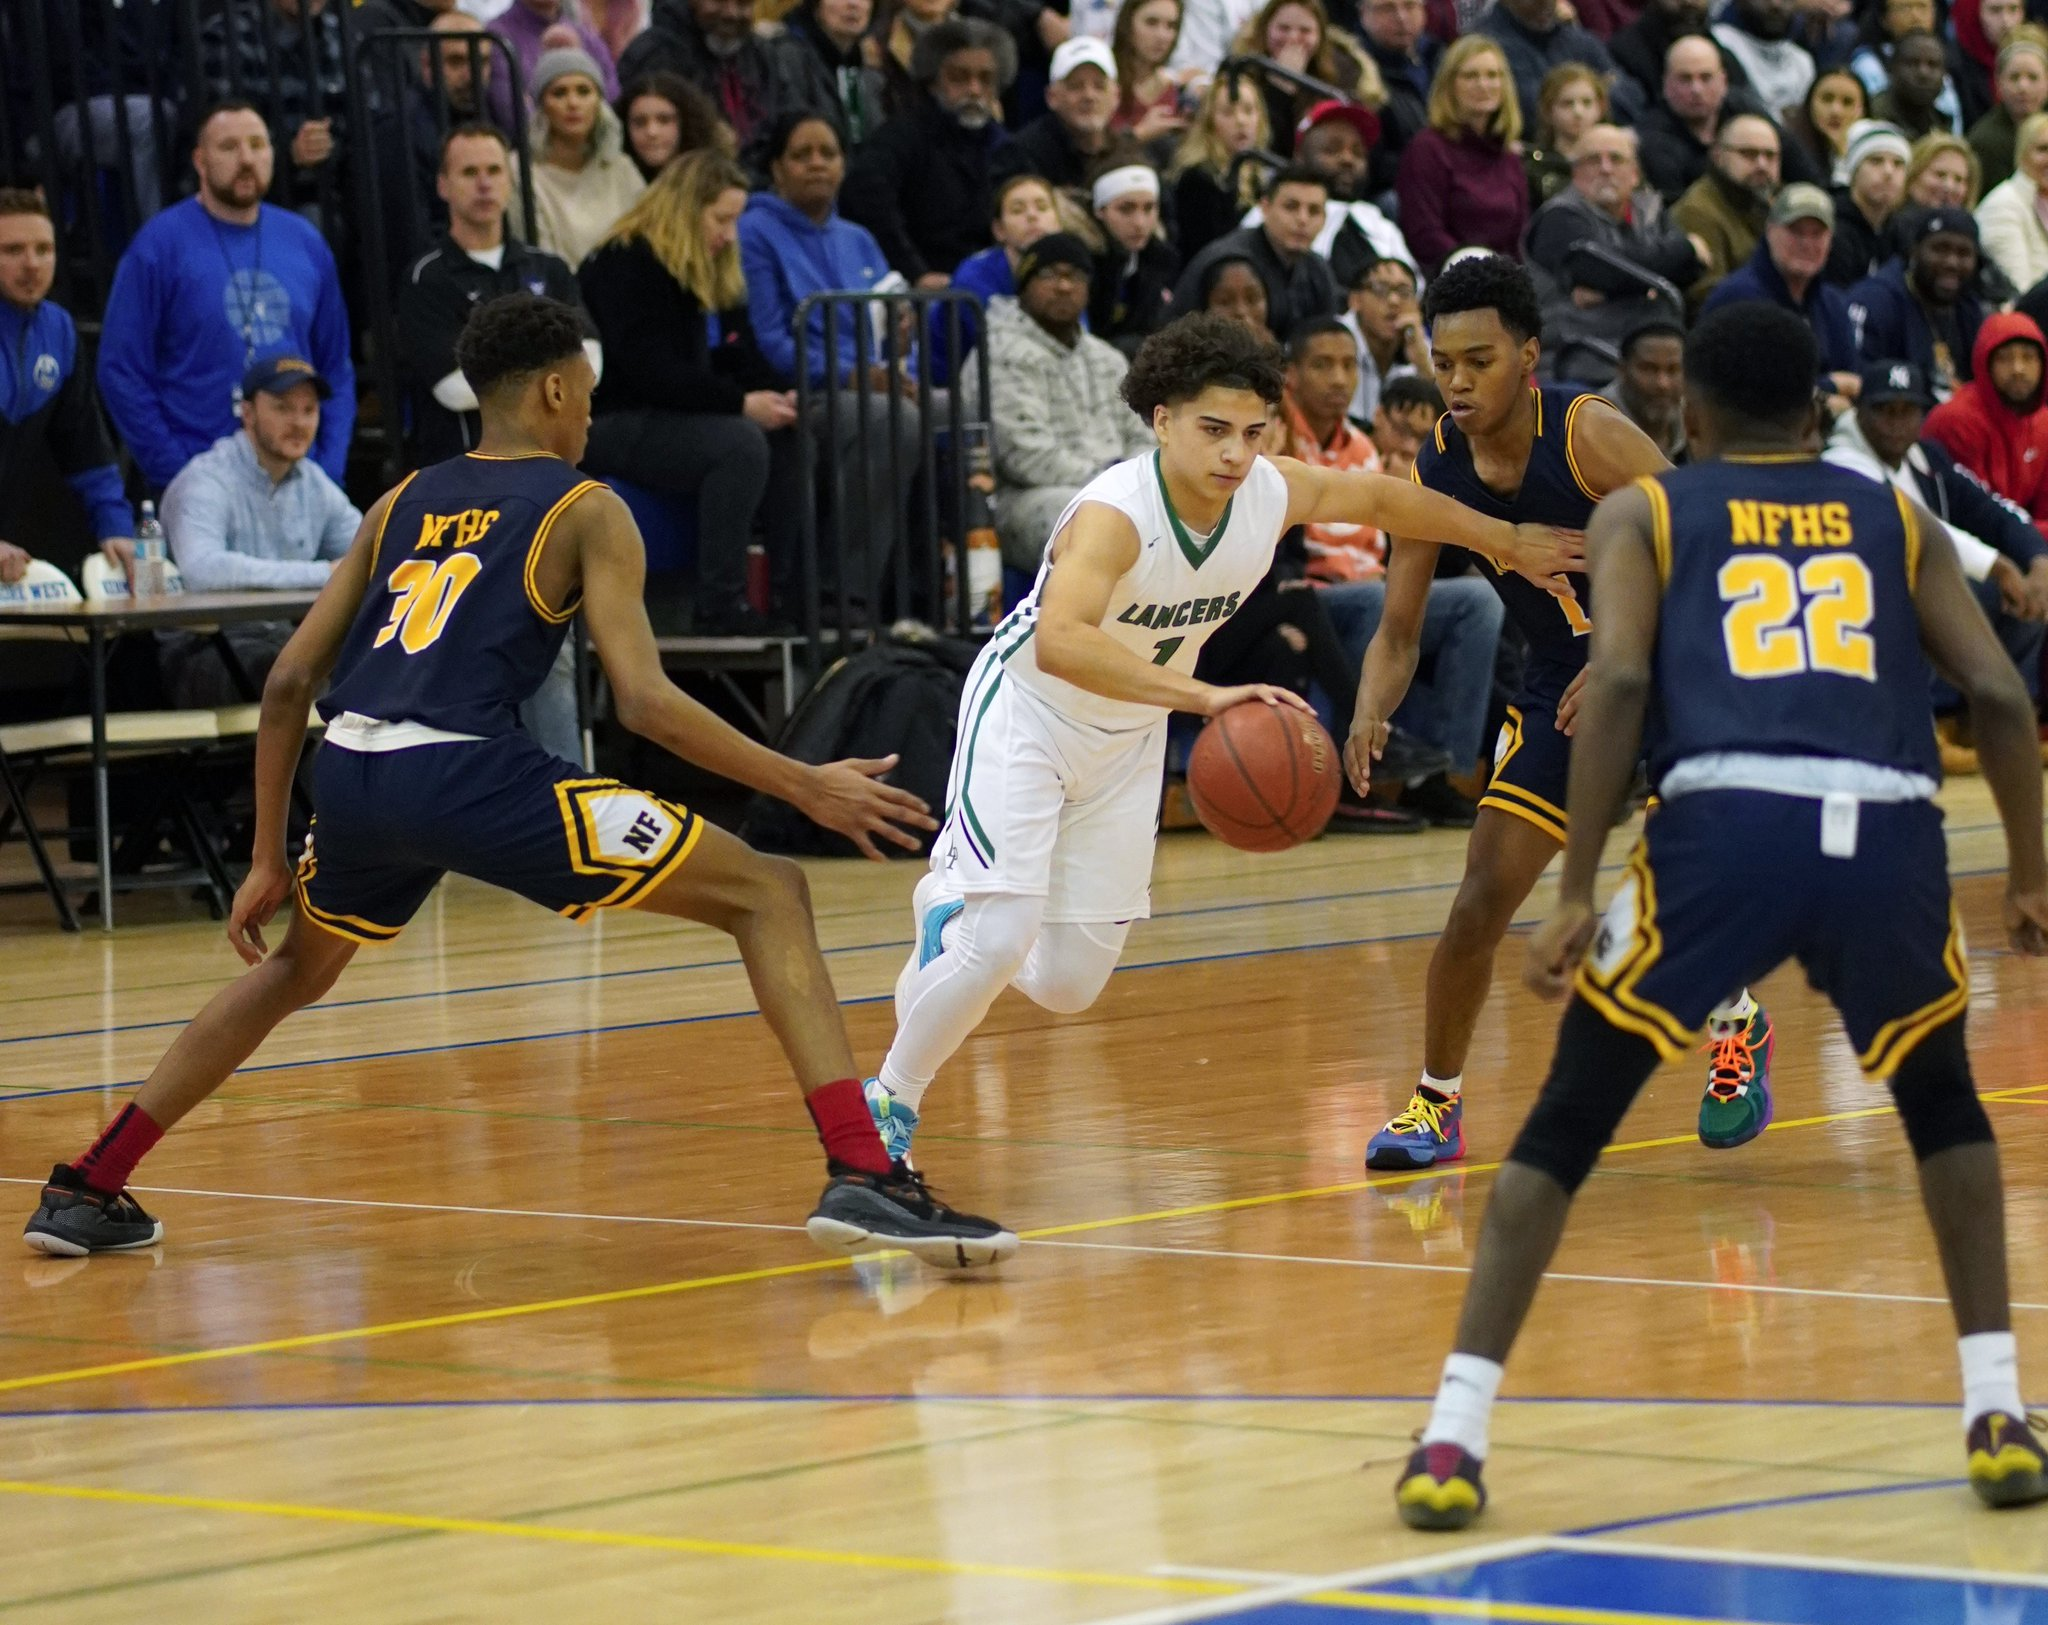 Lewiston-Porter Lancers point guard drives through defenders of Niagara Falls during last week's Niagara Frontier League title game. Duff scored 14 points in the loss. (Photo by Larry Austin)